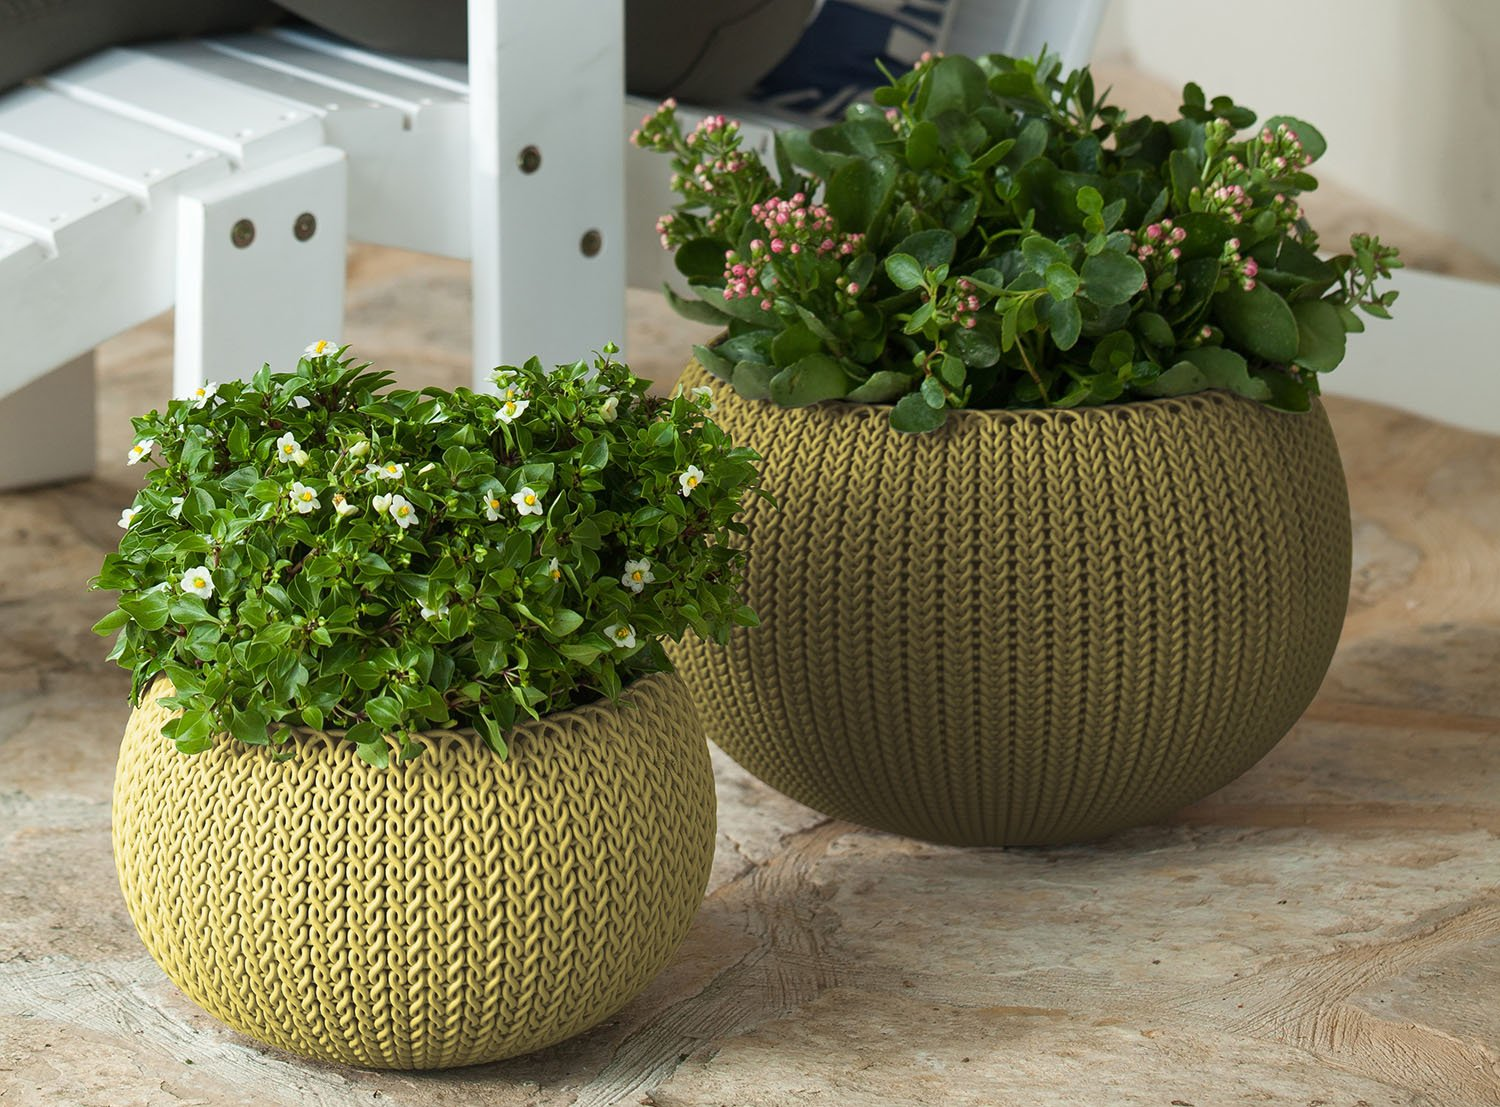 Keter Cozies Large Plastic Knit Texture 21 Planter Bowl with Removable Liner Citrus Green